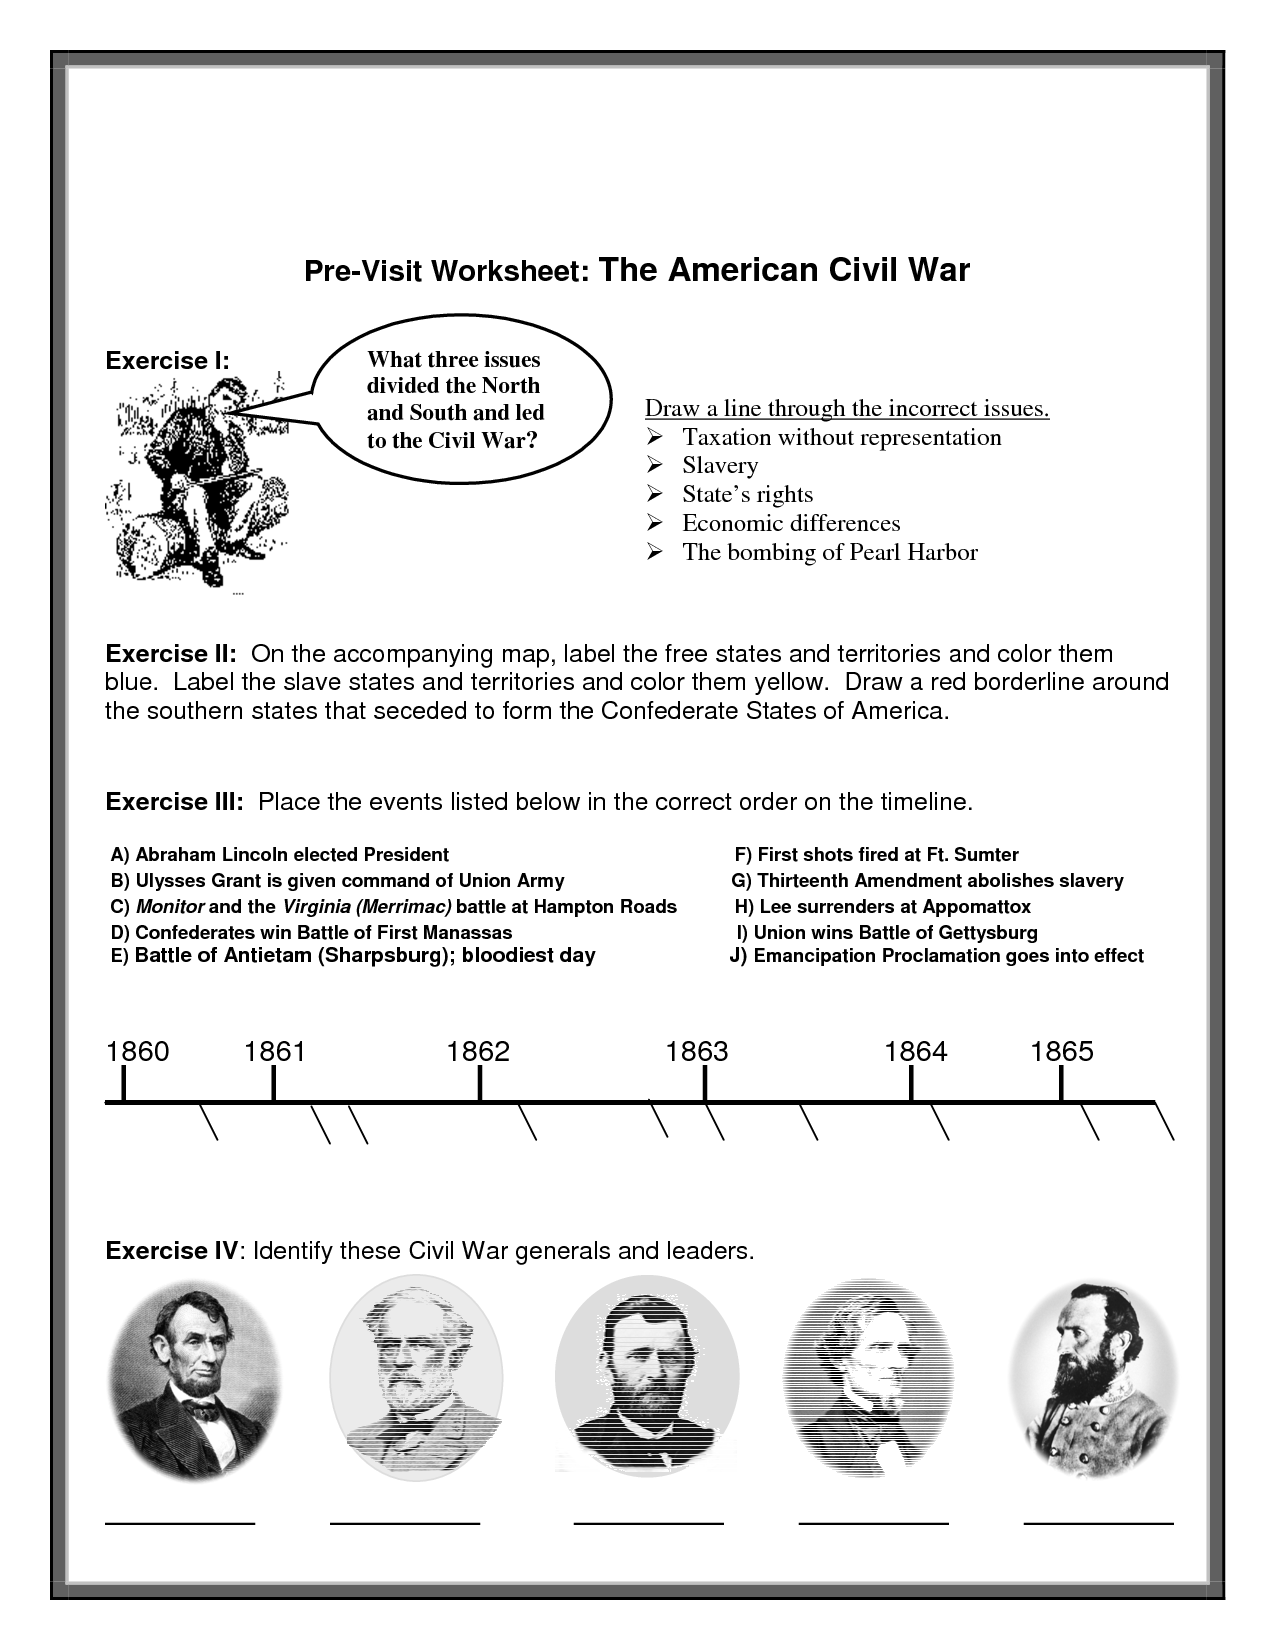 28 Civil War Leaders Worksheet